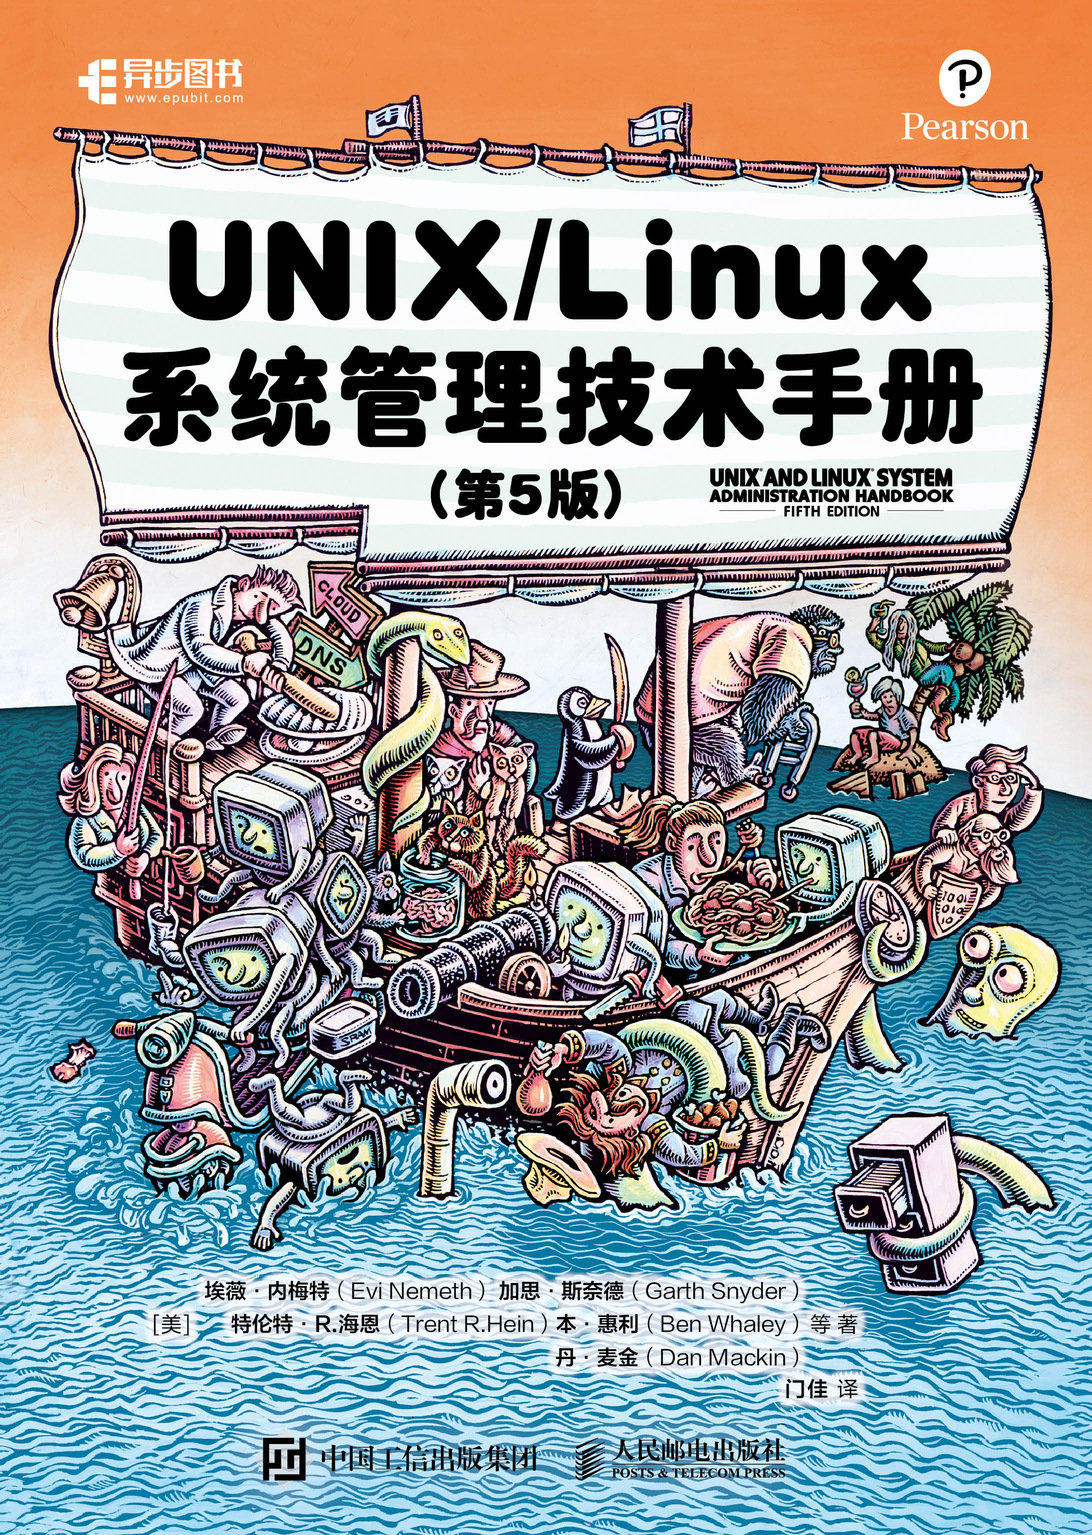 UNIX/Linux 系統管理技術手冊, 5/e (UNIX and Linux System Administration Handbook, 5/e)-preview-1